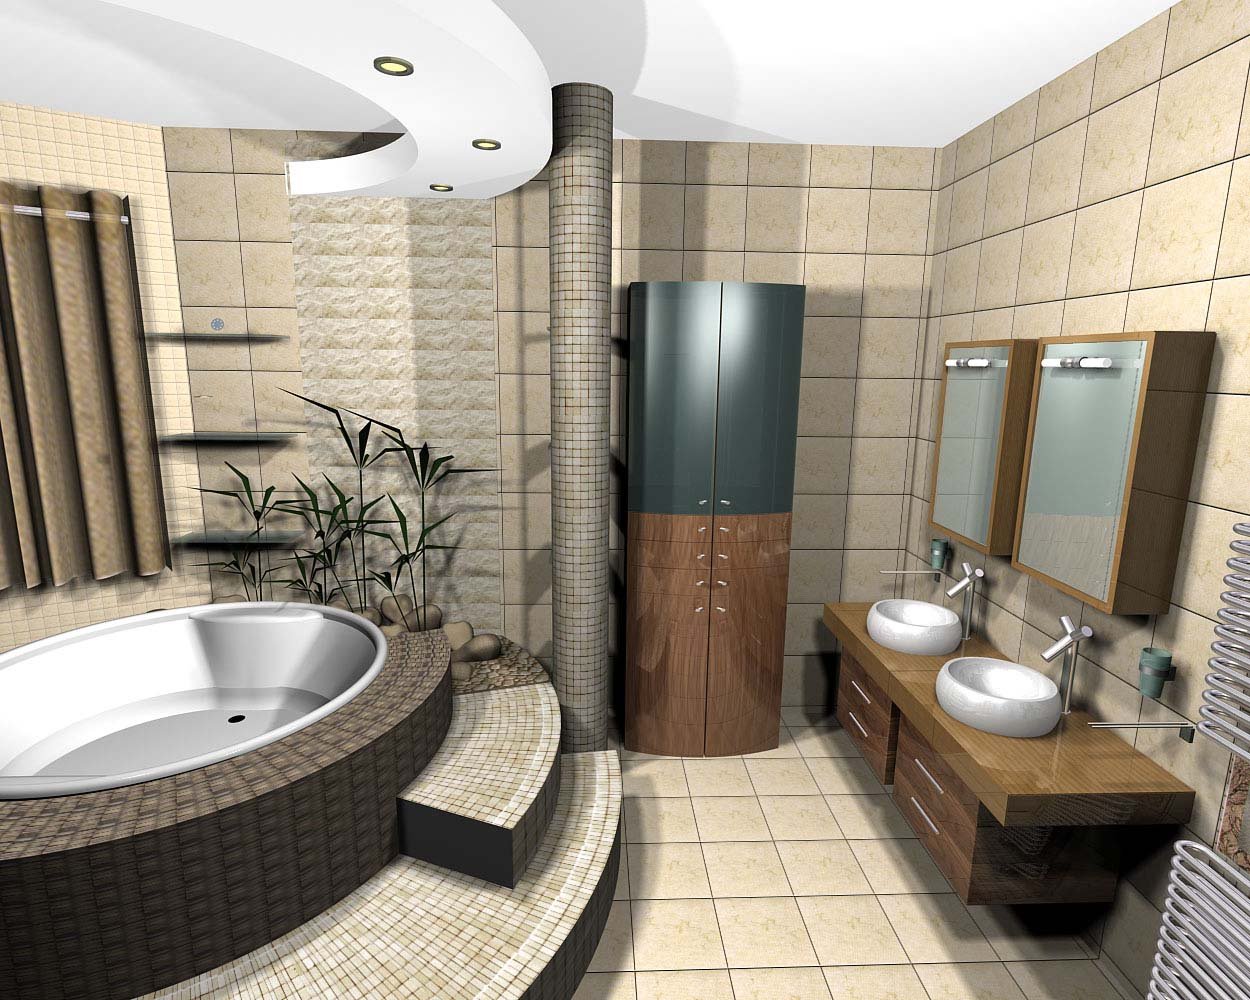 bathrooms ideas photo - 1